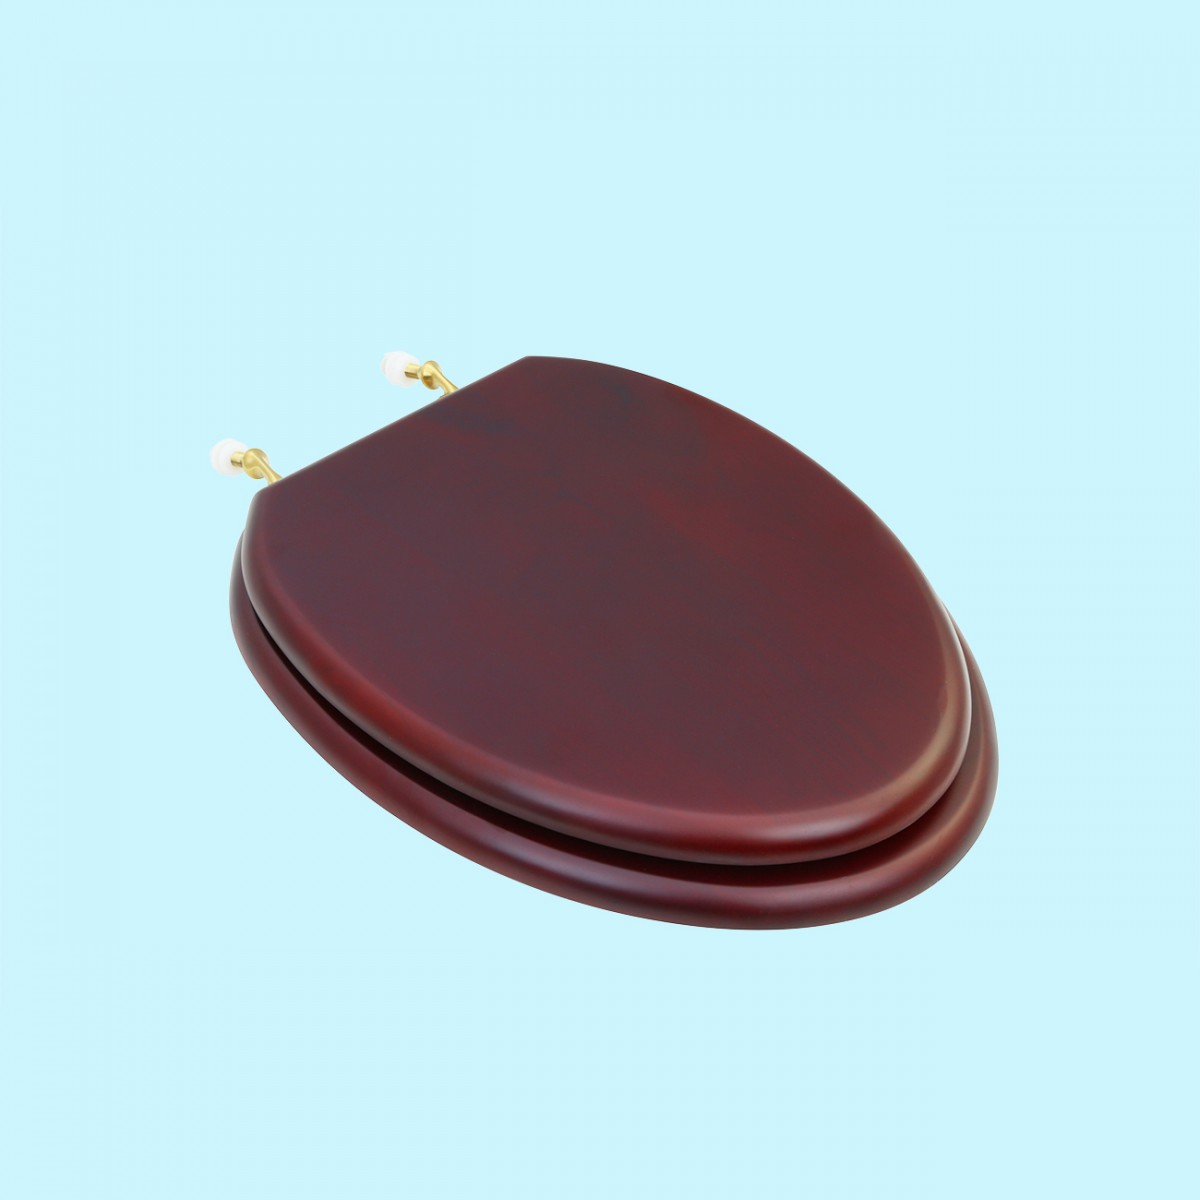 Toilet Seat Elongated Solid Wood Cherry Fin Brass Hinge Sup